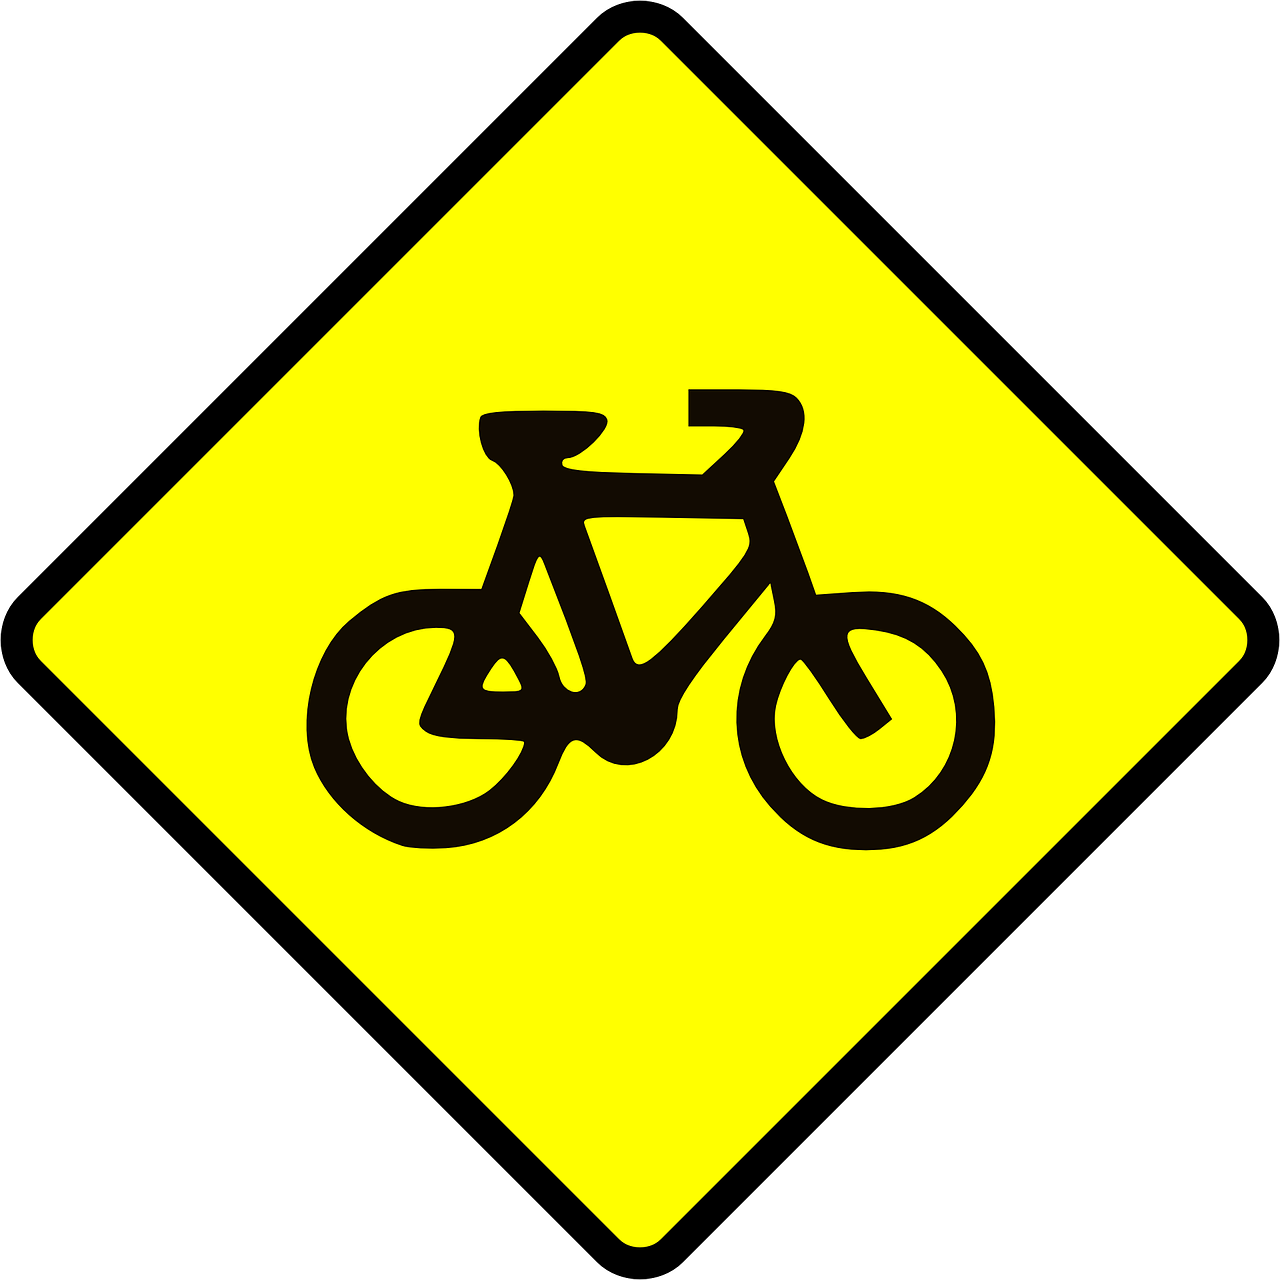 bicycle biking caution free photo